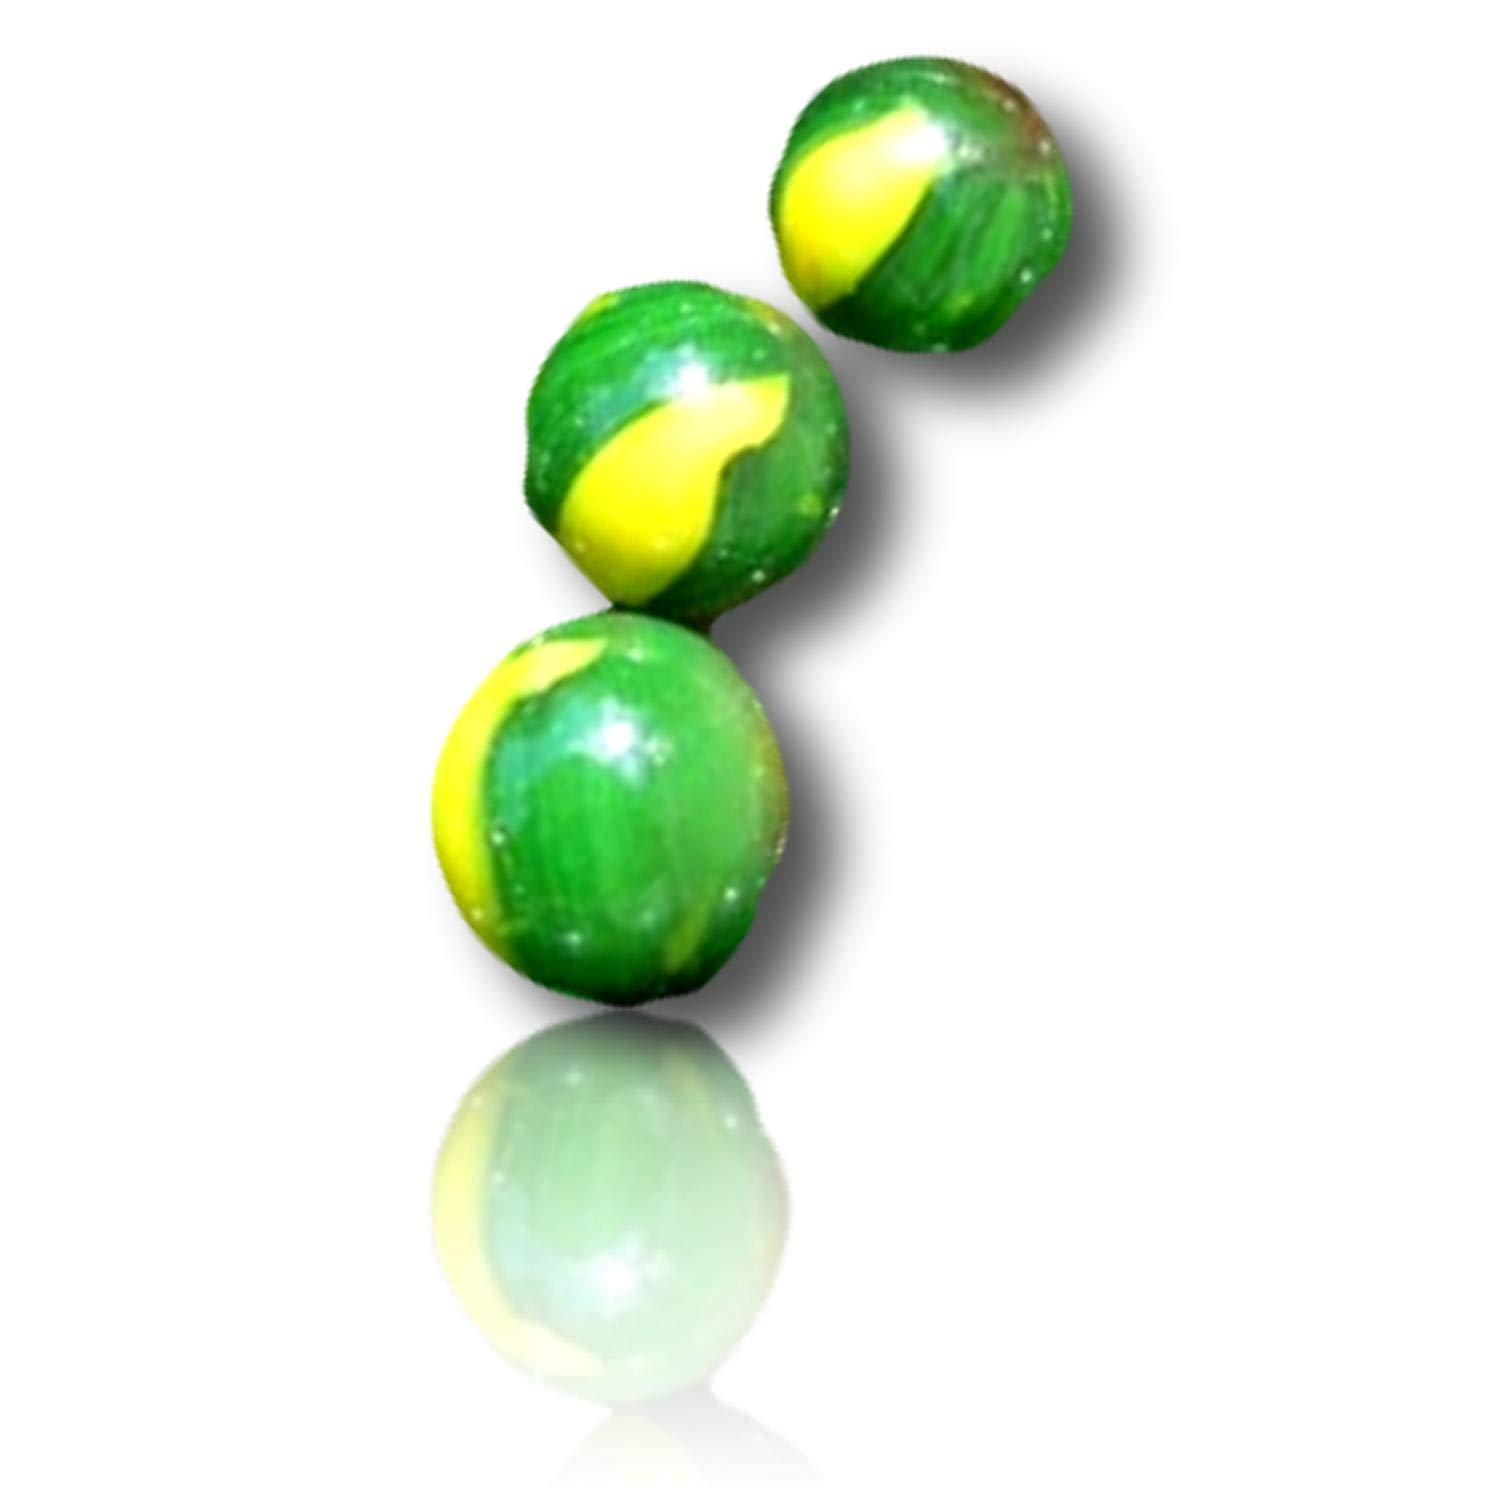 """Custom & Decorative { 1/2'' Inch} 1000 Approx 6 Pounds Small-Size """"Round"""" Glass Marbles w/Peewee Wholesale Beautiful Bright Jungle Turtle Swirls Shooter Style [Red, Yellow & Green] + Certificate"""